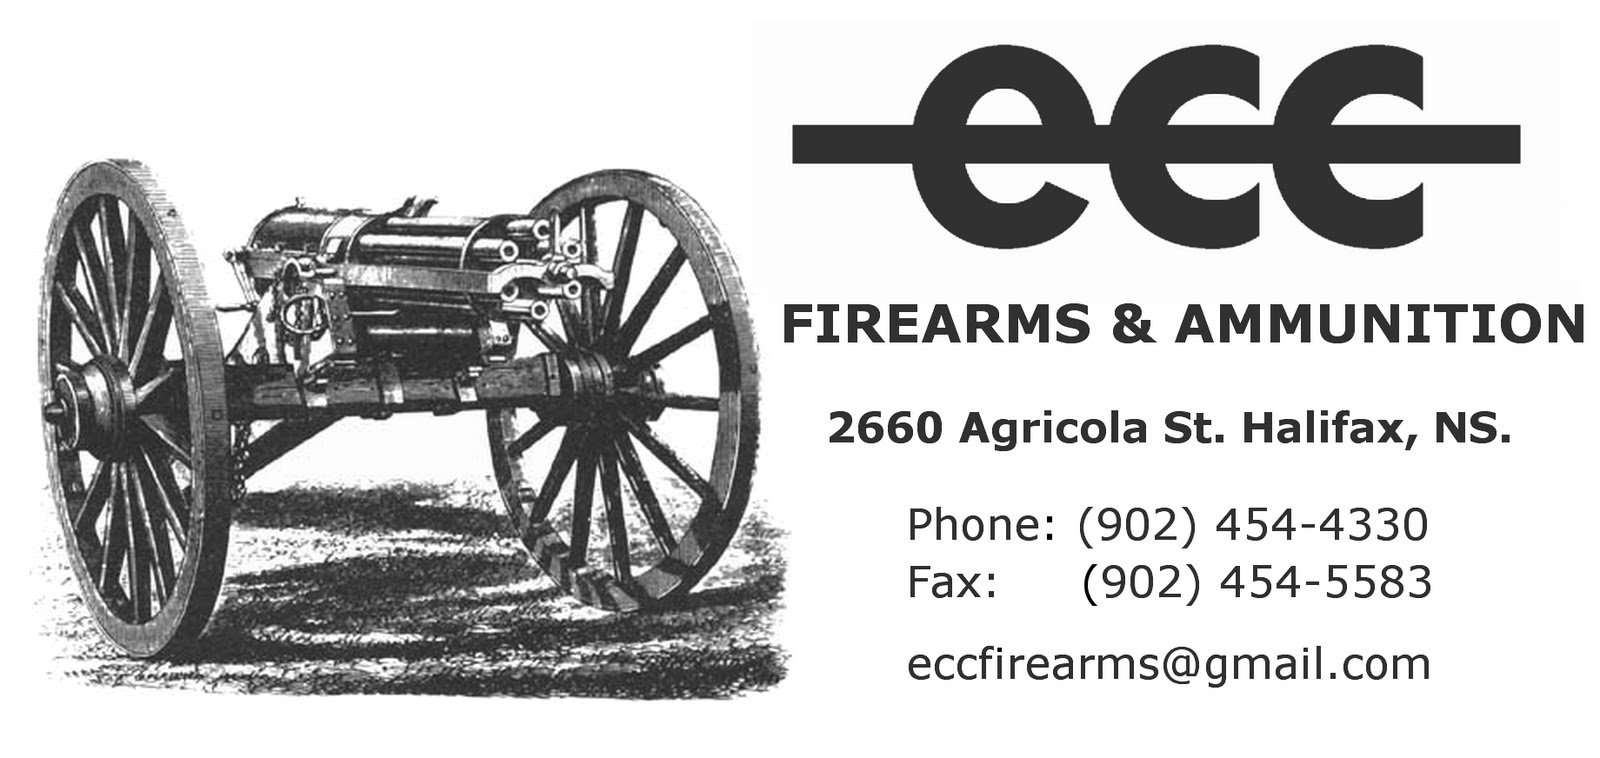 the halifax army navy store  ecc firearms and ammunition